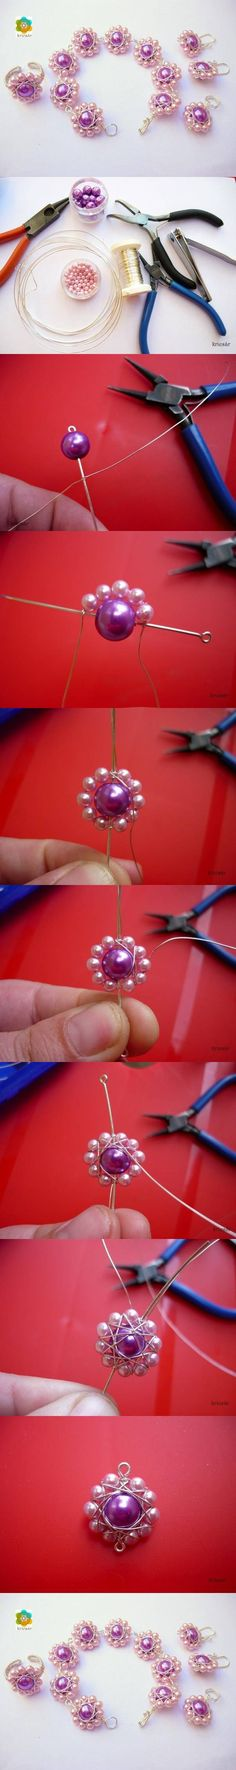 DIY Bead Flower Internet Tutorial